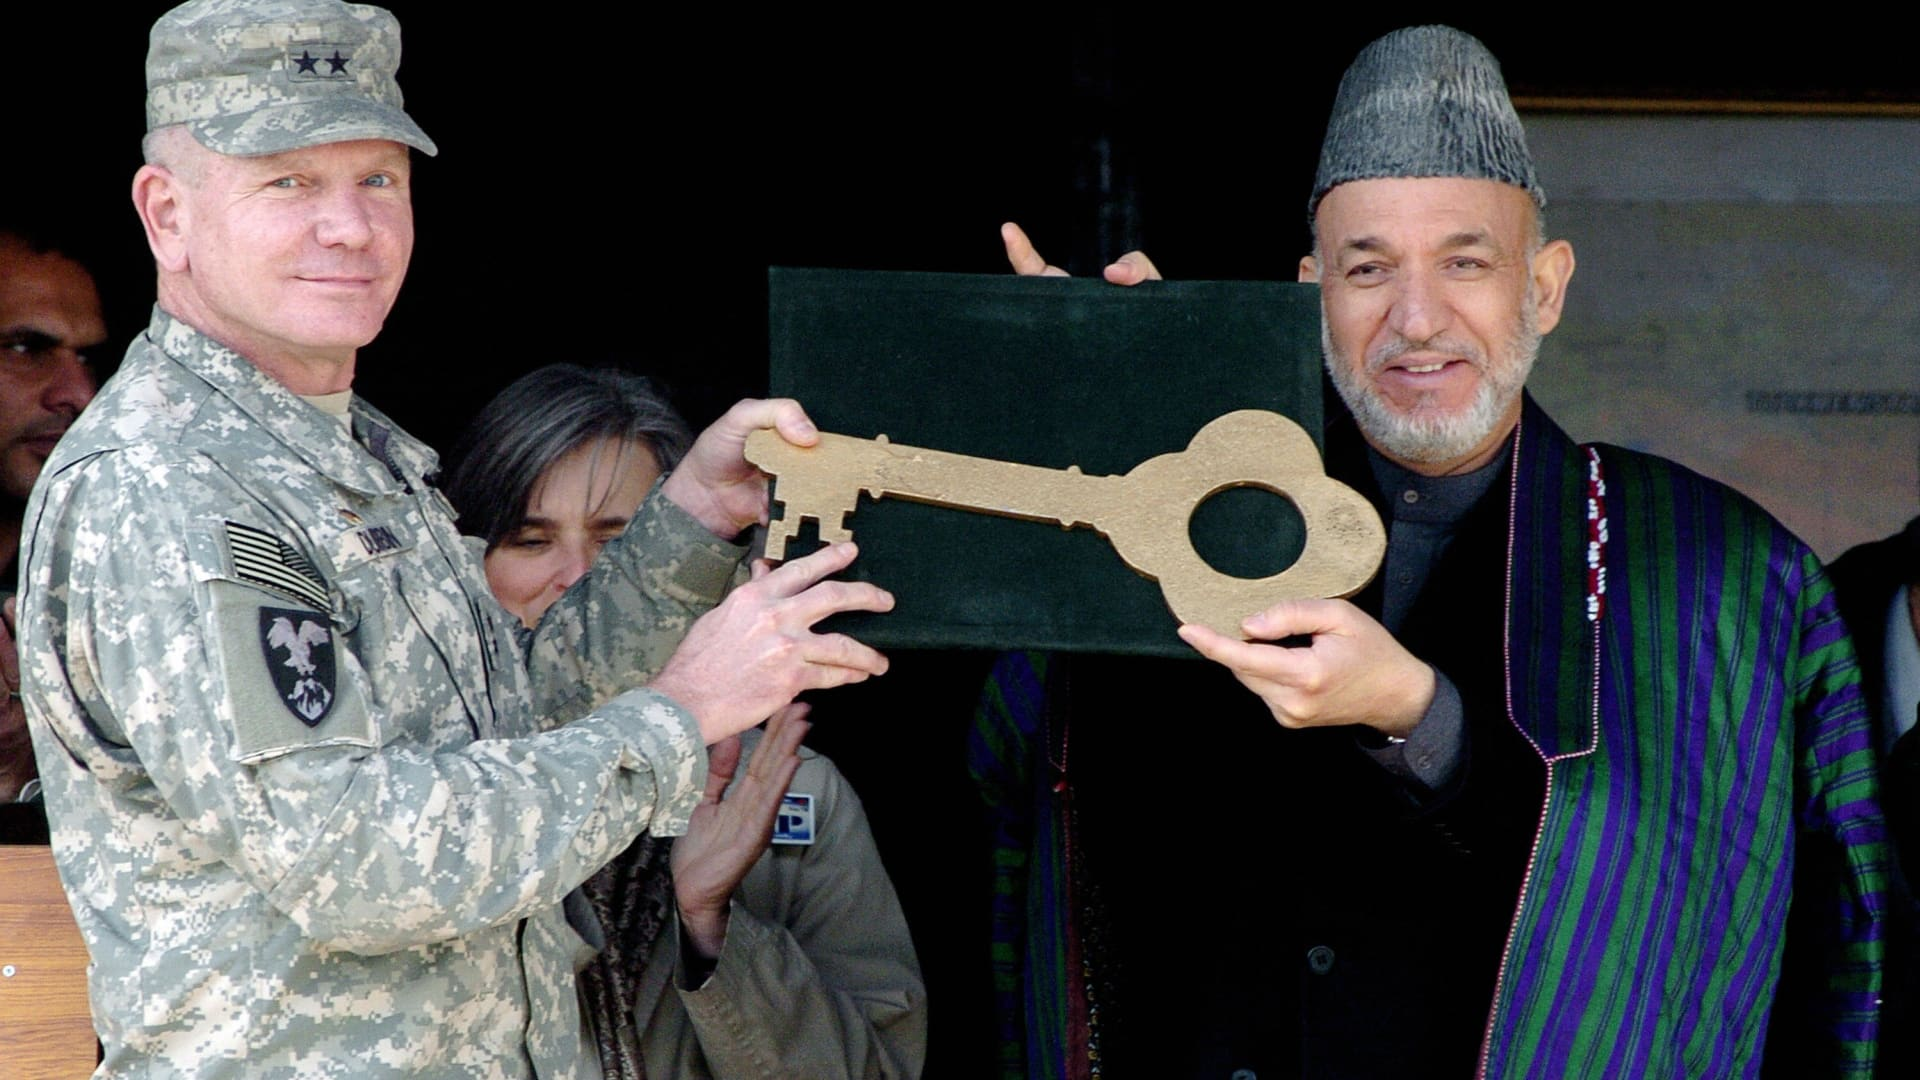 Kabul, AFGHANISTAN: Afghan President Hamid Karzai (R) receives a large key, representing the keys for military vehicles donated to the Afghan National Army, from commander of the Combined Security Transition Command in Afghanistan Major General Robert E. Durbin (L) during a weapons hand over ceremony in Kabul, 01 February 2007.